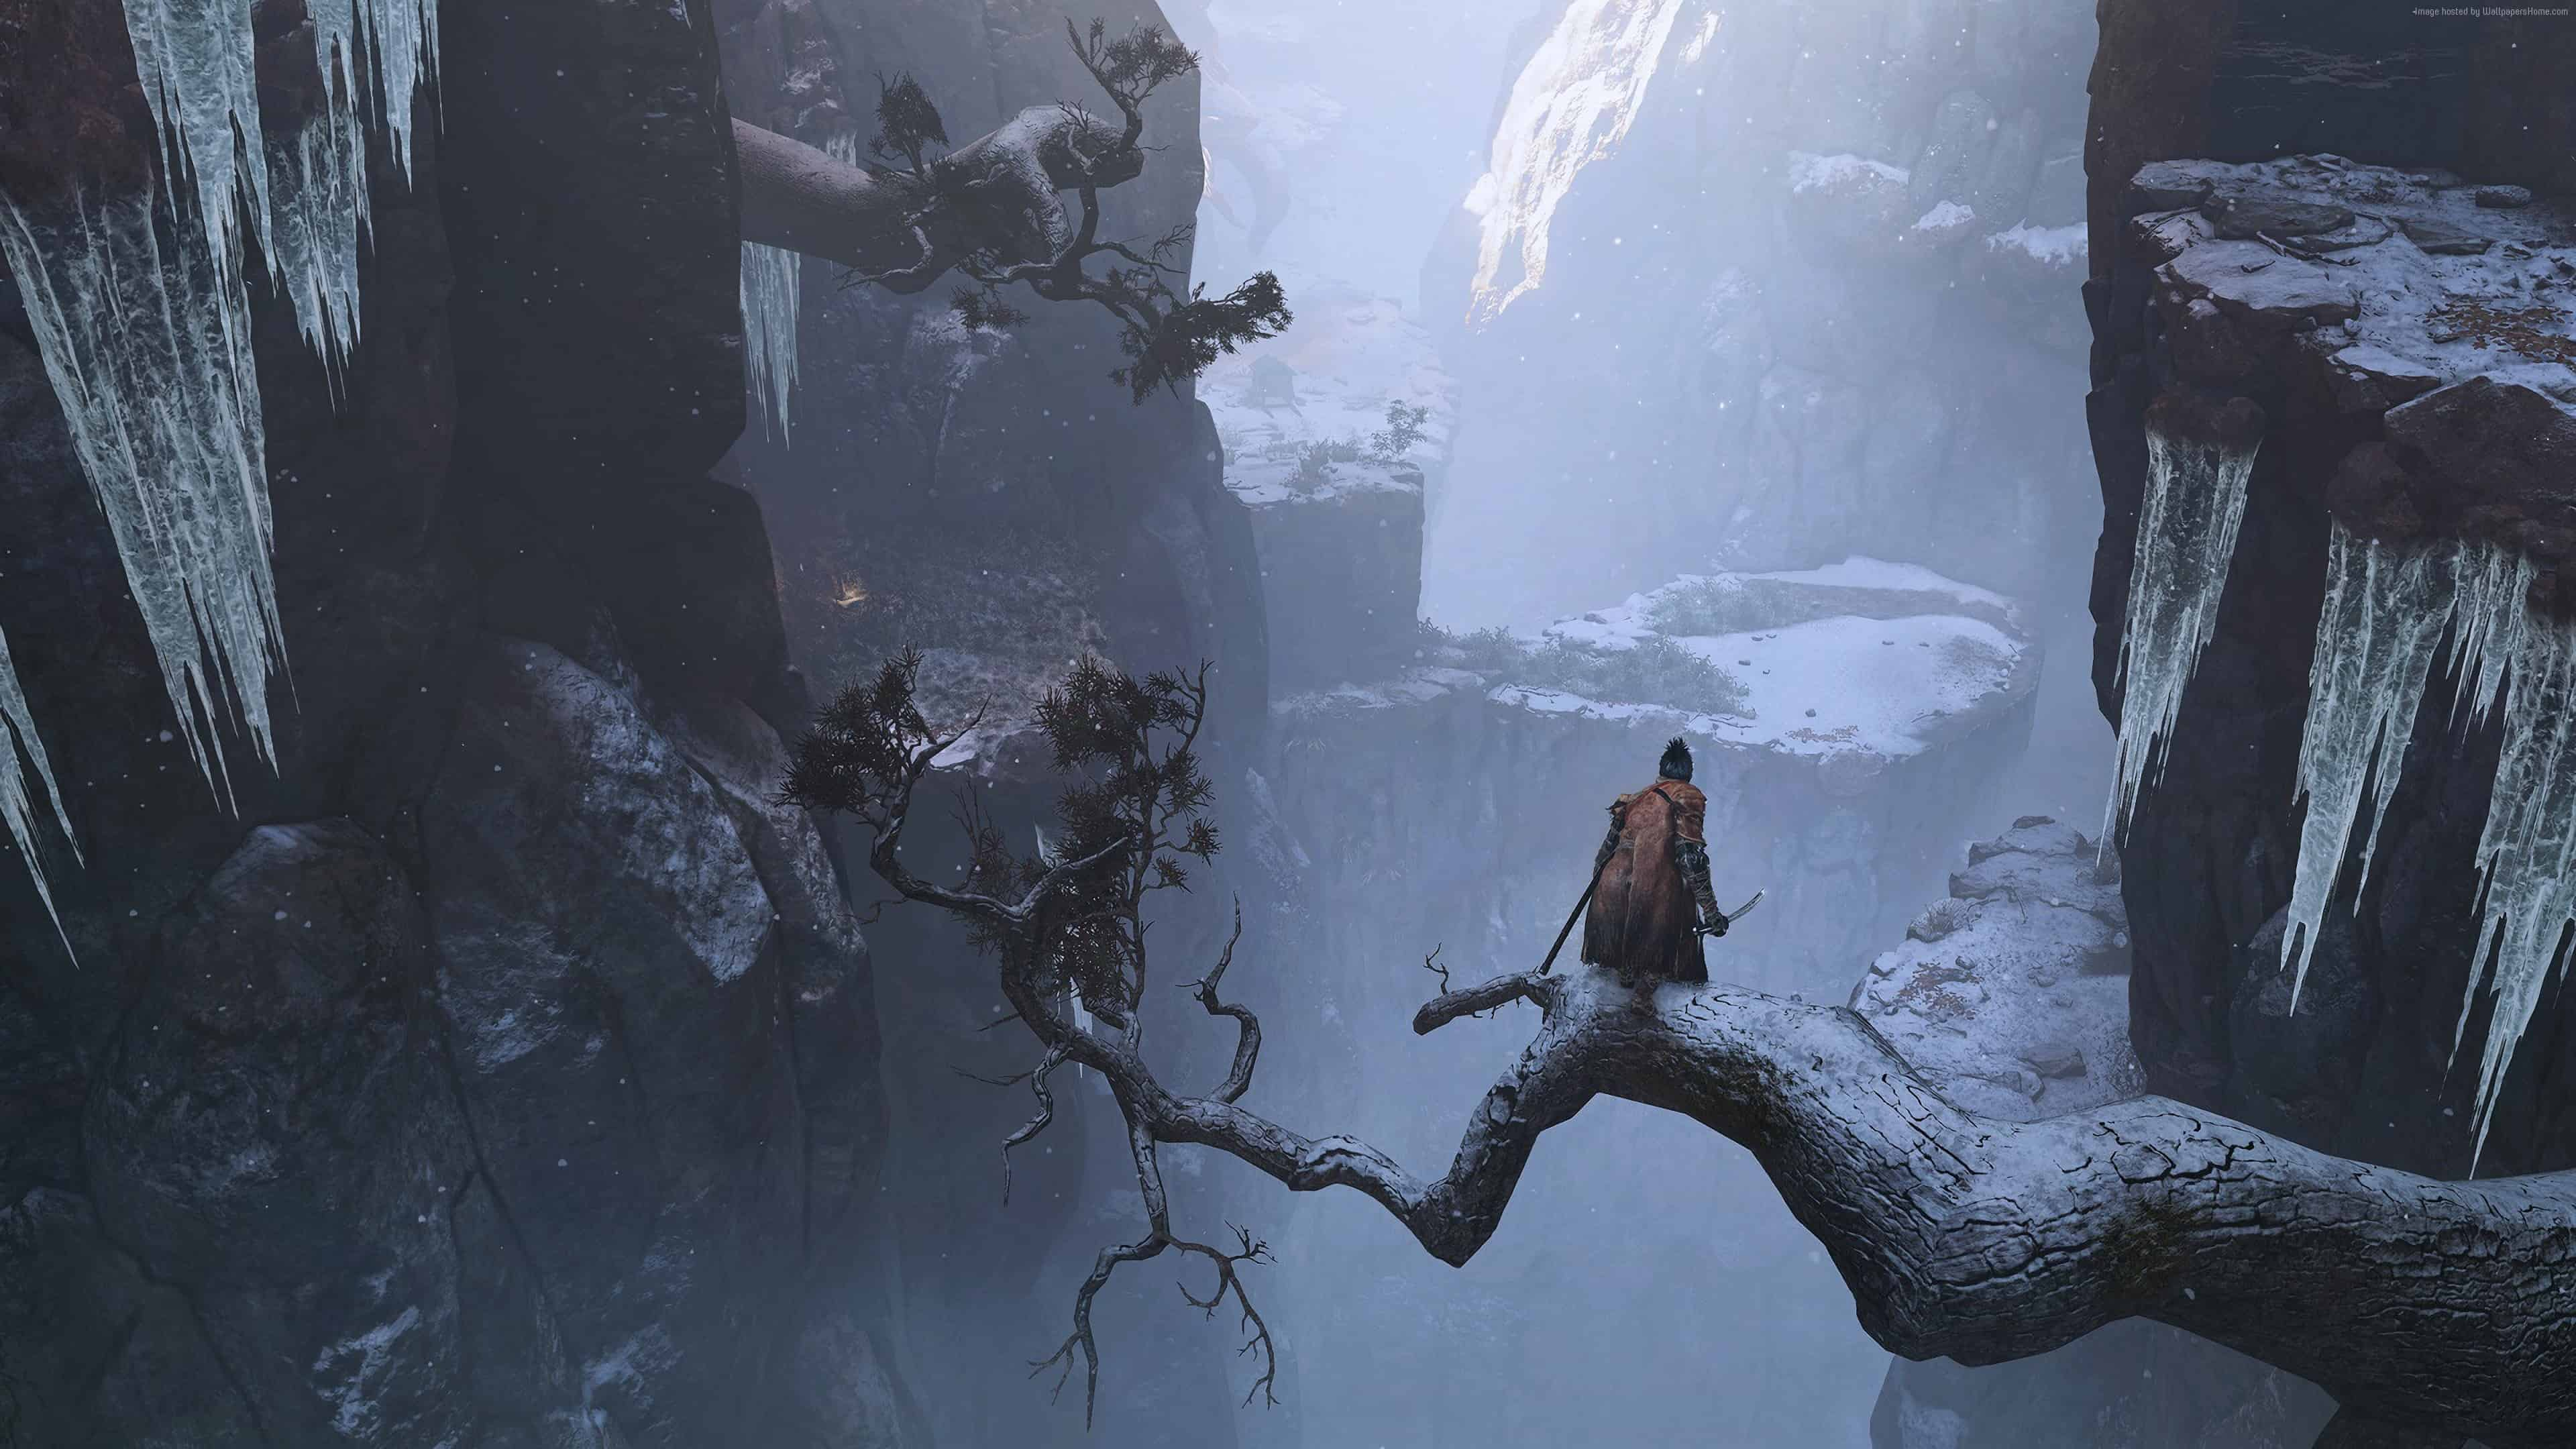 Sekiro Shadows Die Twice PSX 2018